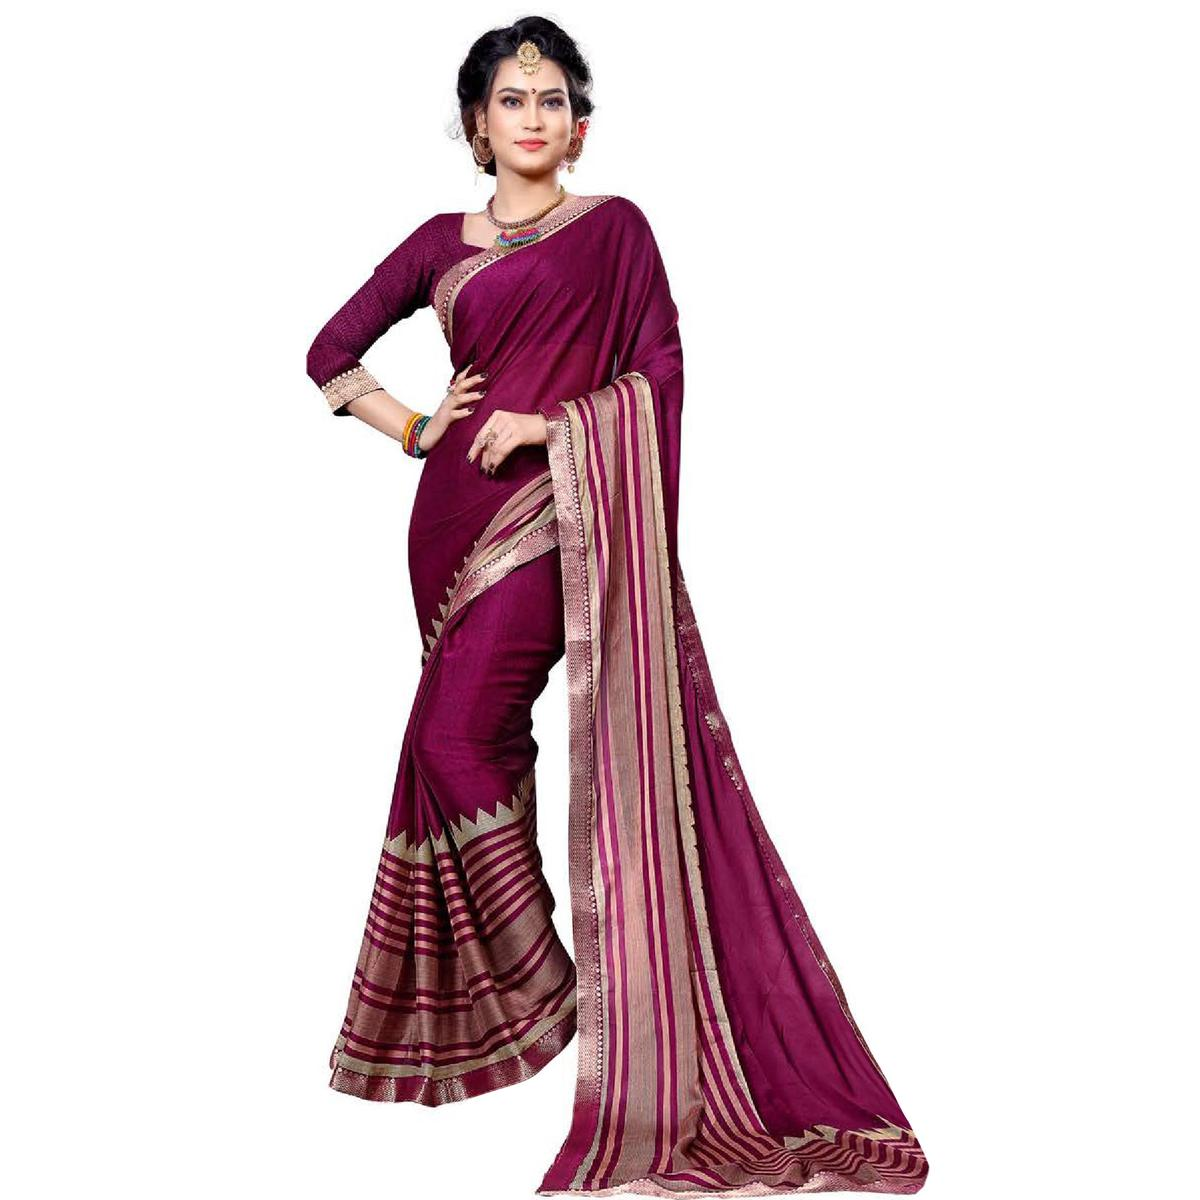 Attractive Magenta Pink Colored Festive Wear Printed Chiffon Saree